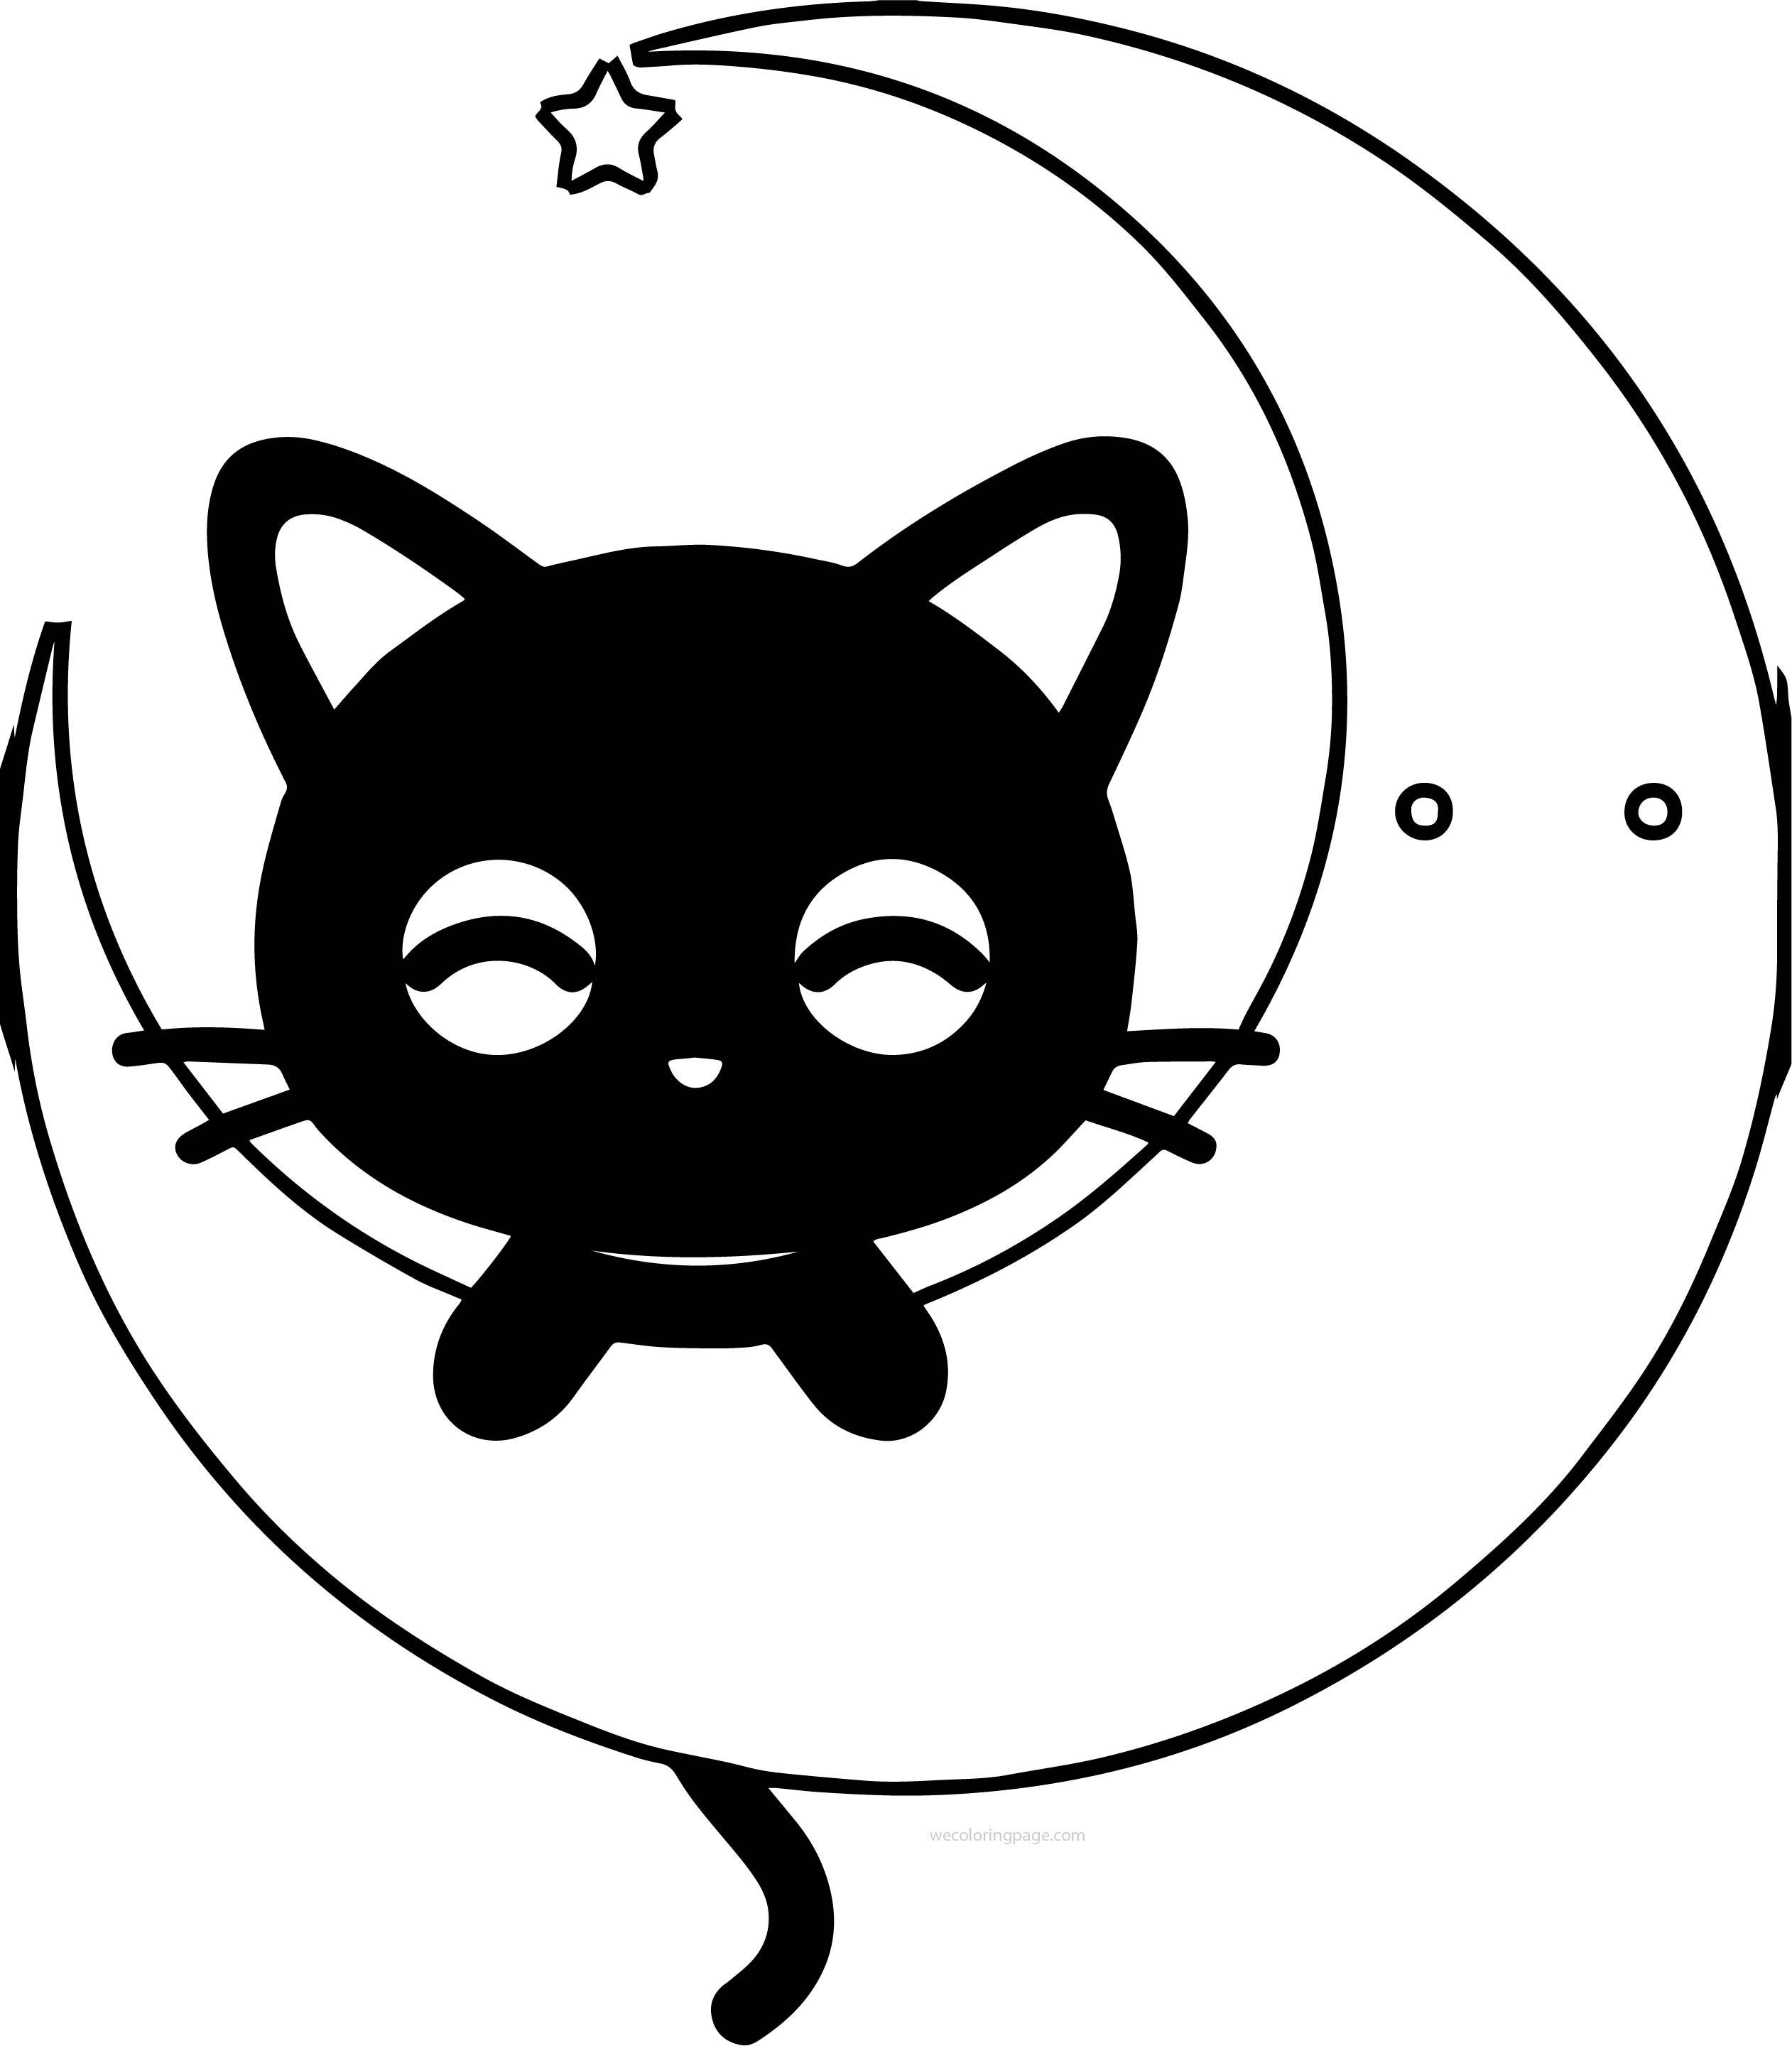 Moon Cat Coloring Page